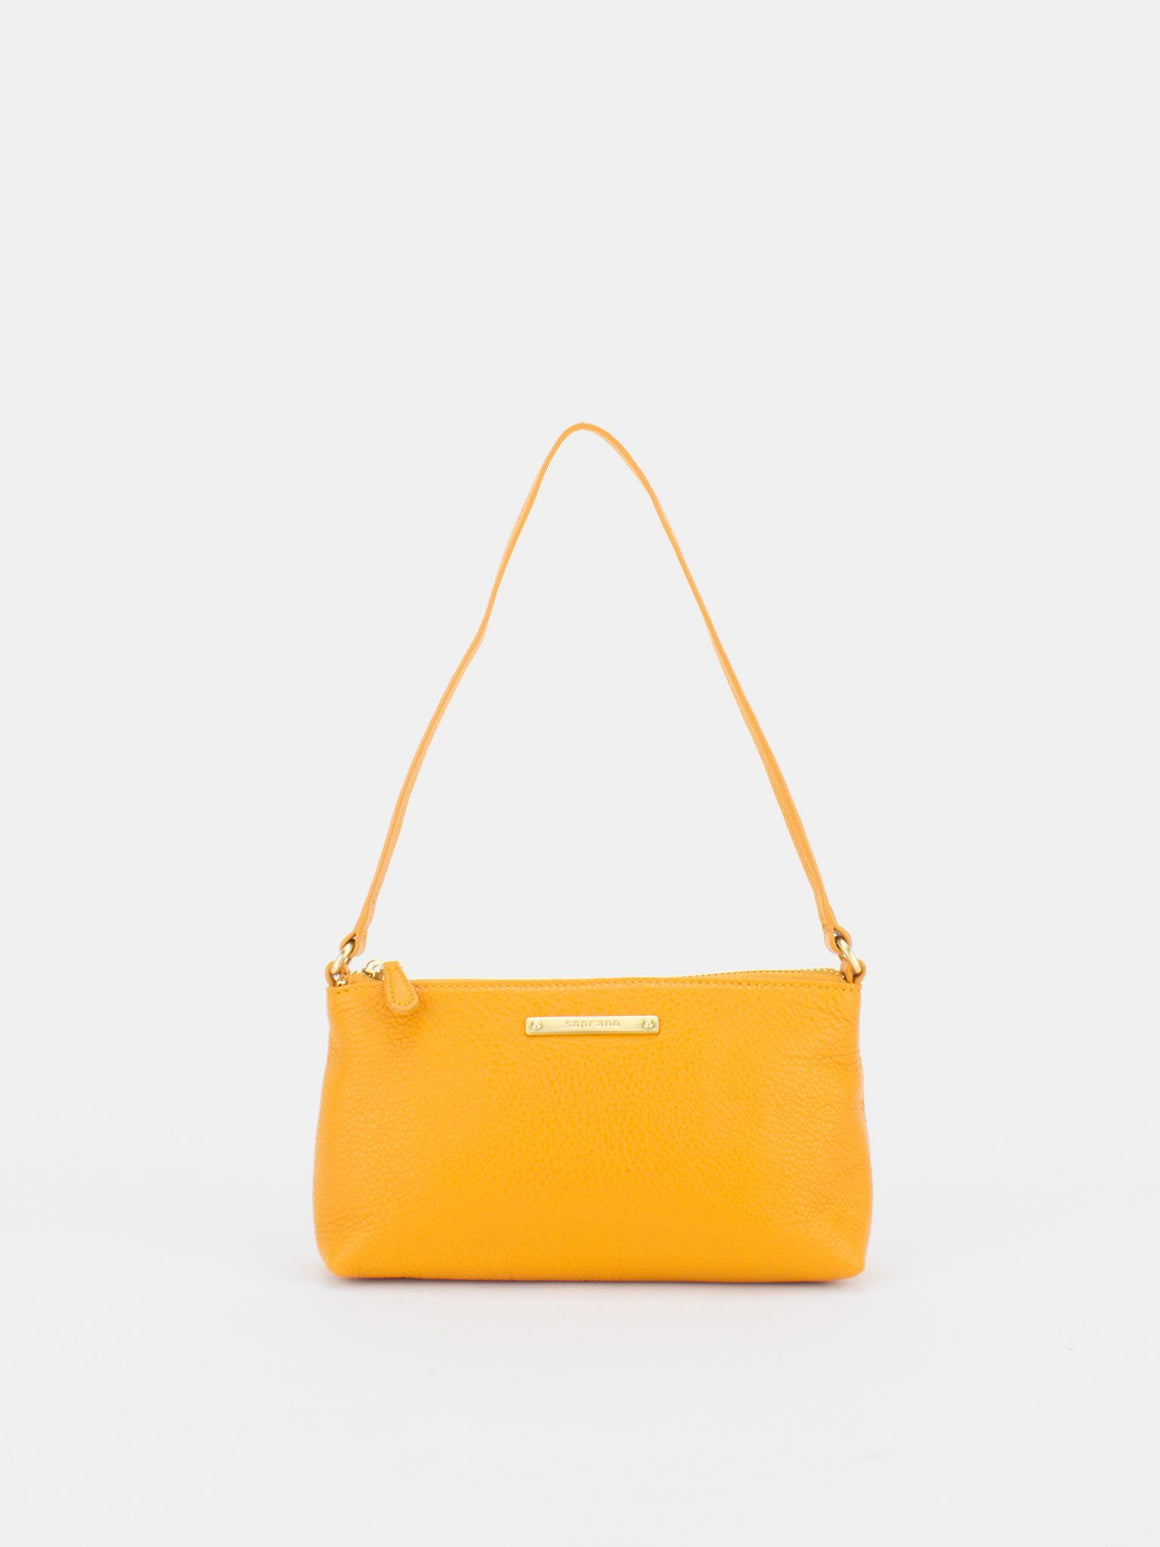 PEARL Leather Shoulder Clutch Bag - Mustard